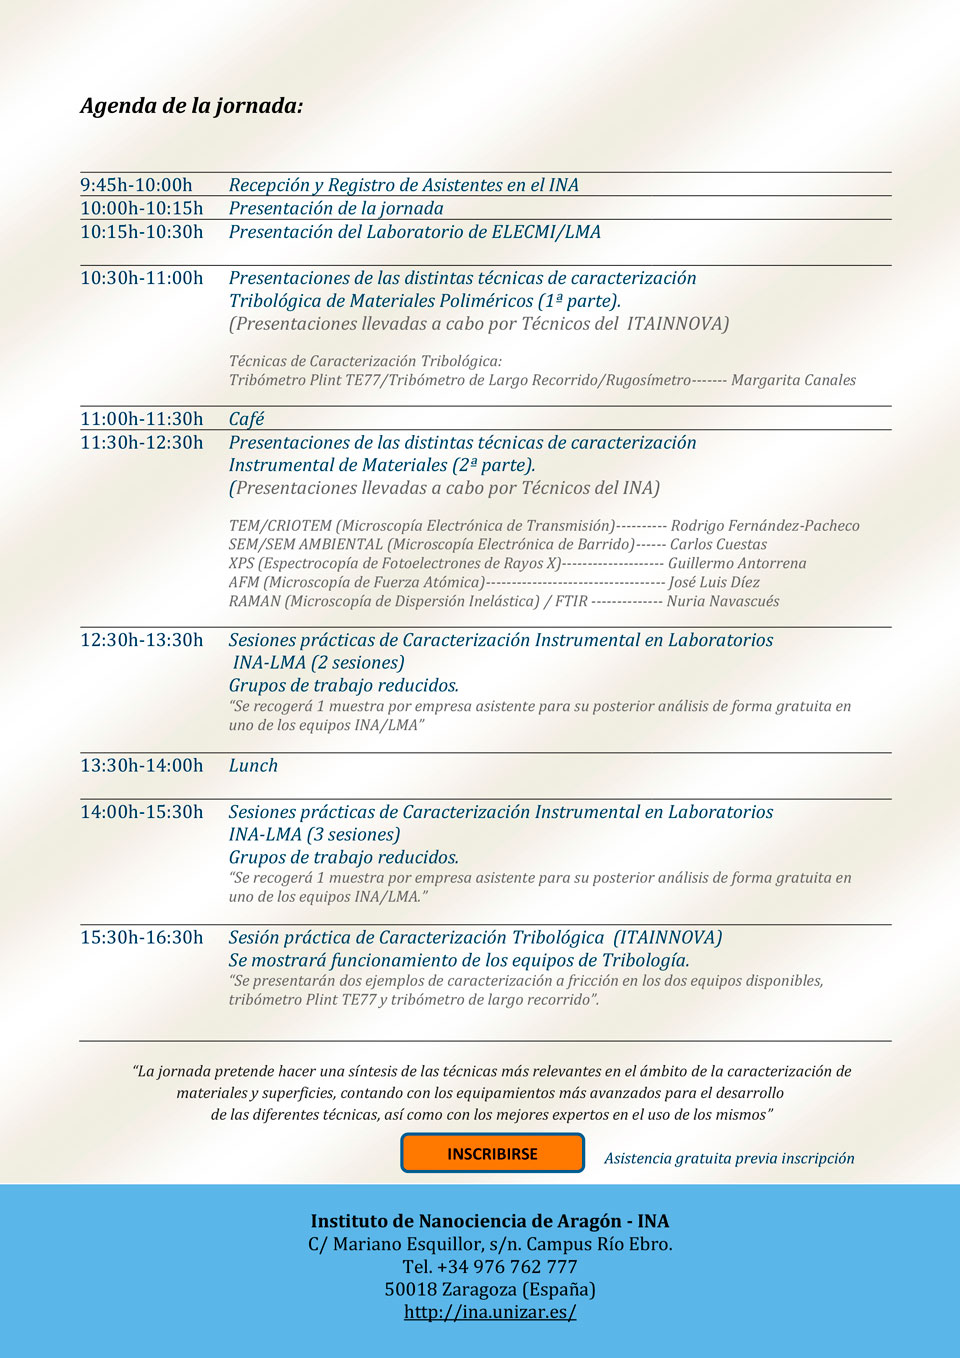 Agenda de la Jornada de Materiales y Superficies del INA